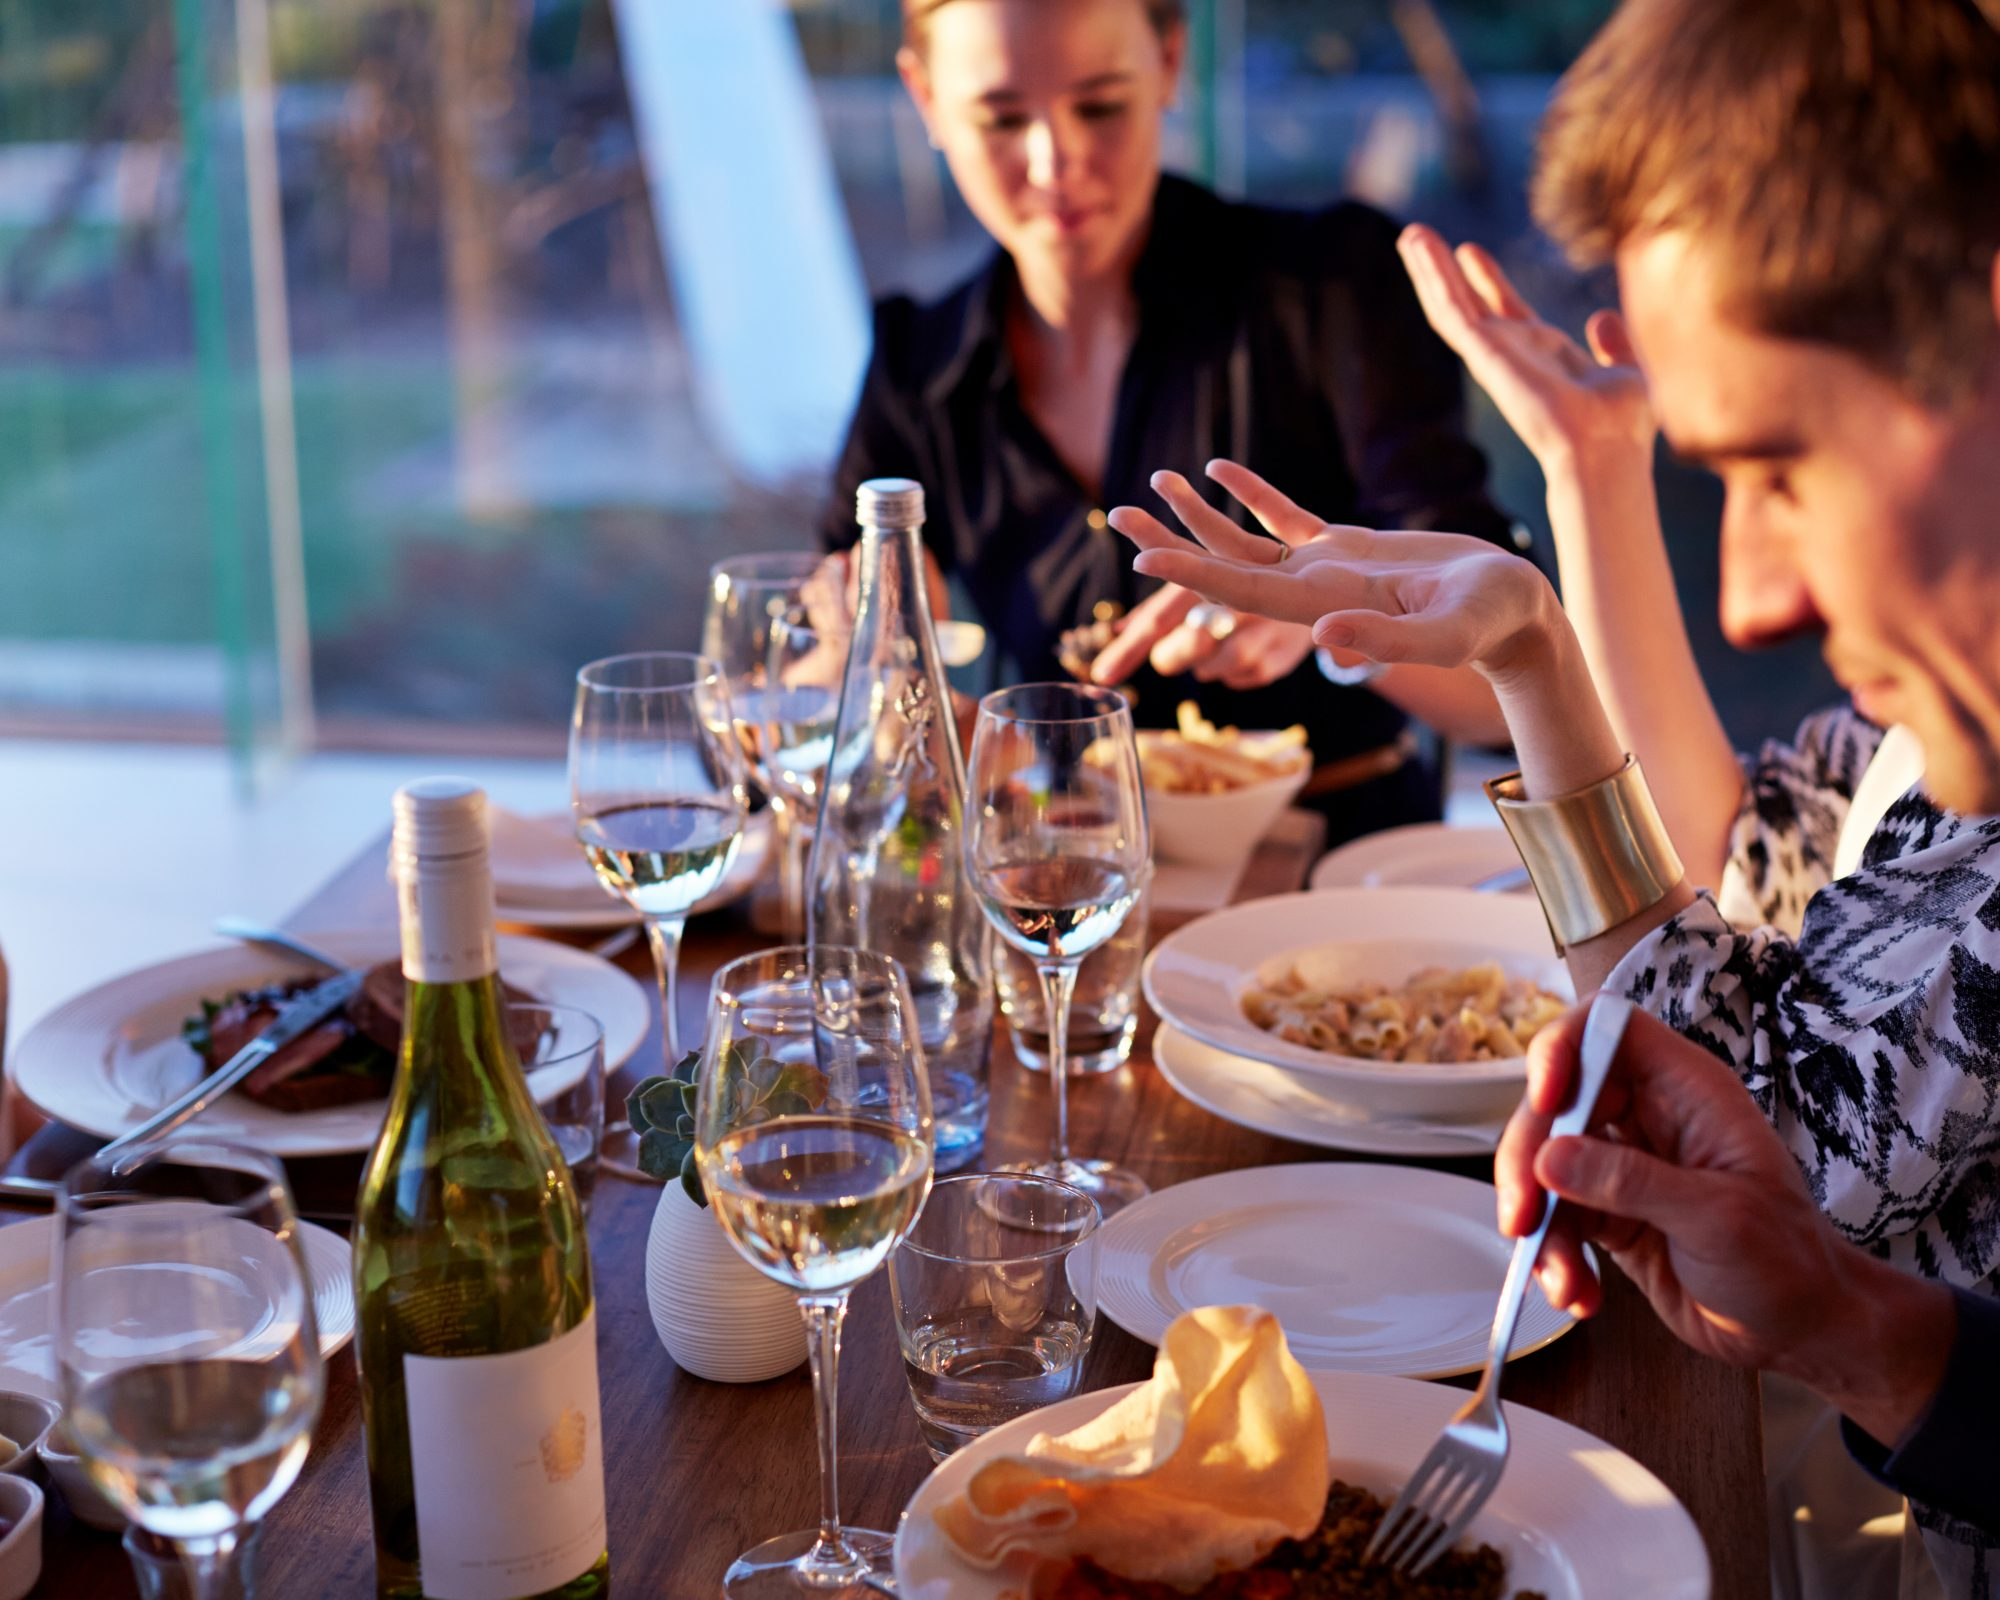 people at dinner table with food, wine bottles, and glasses